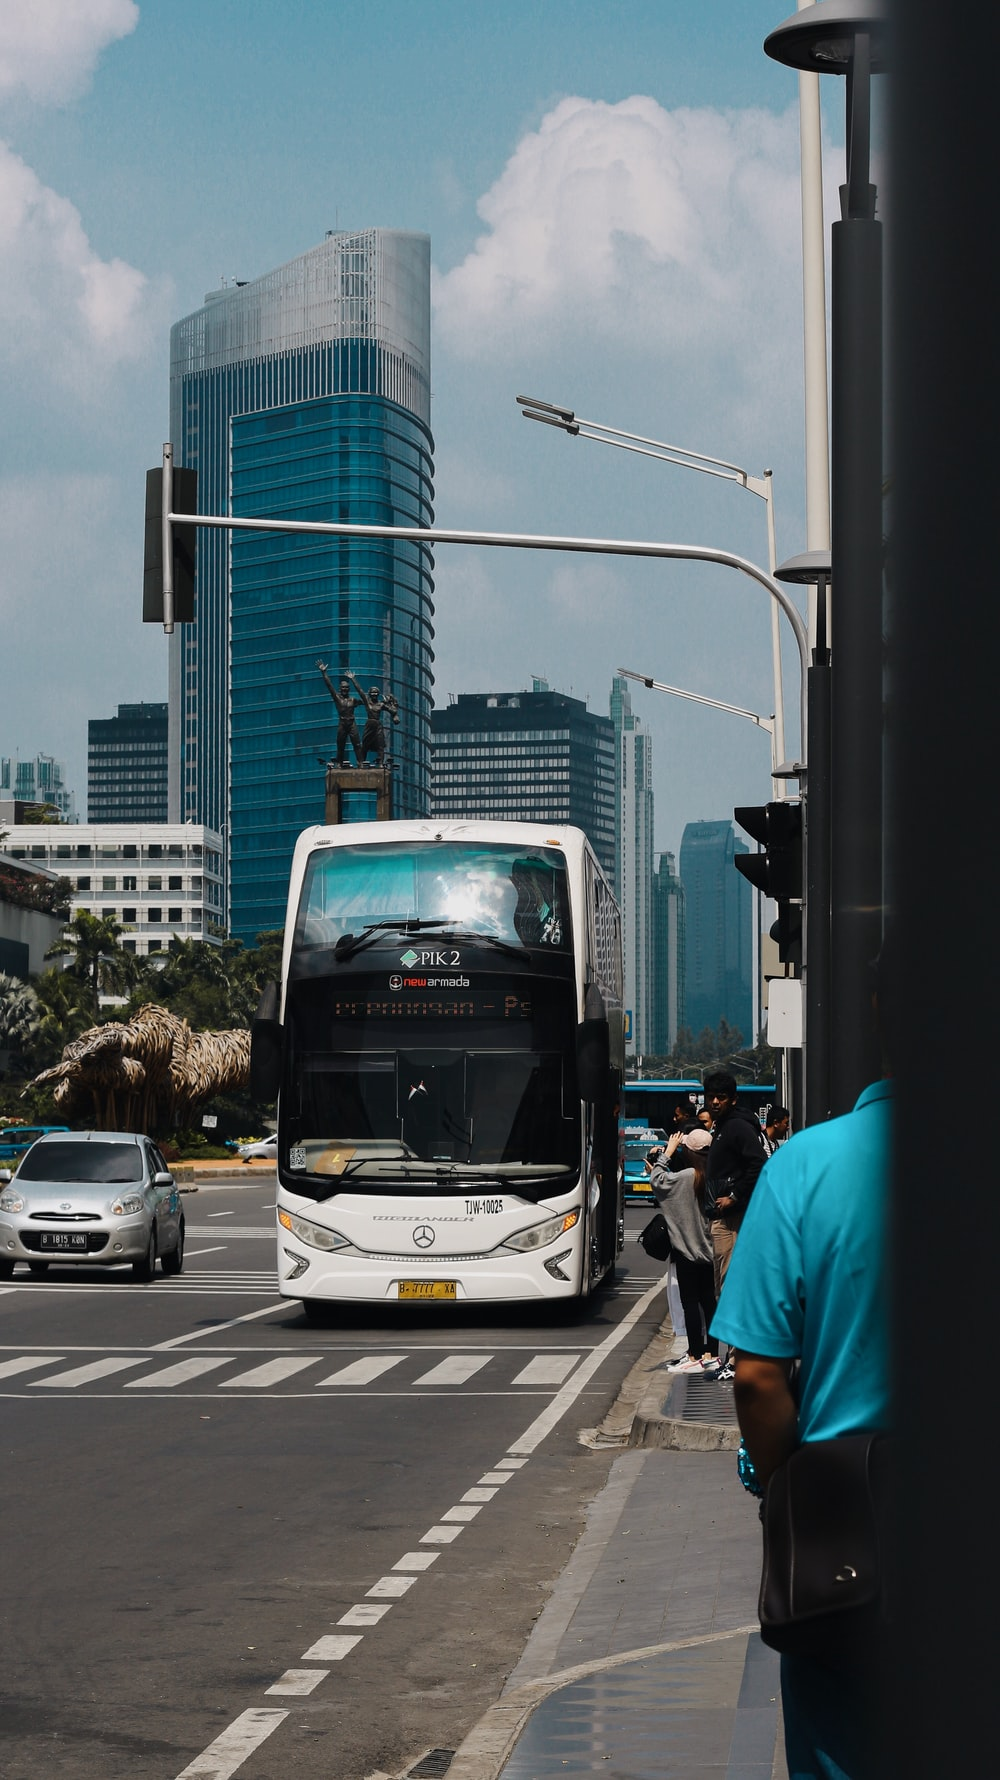 white bus running on road